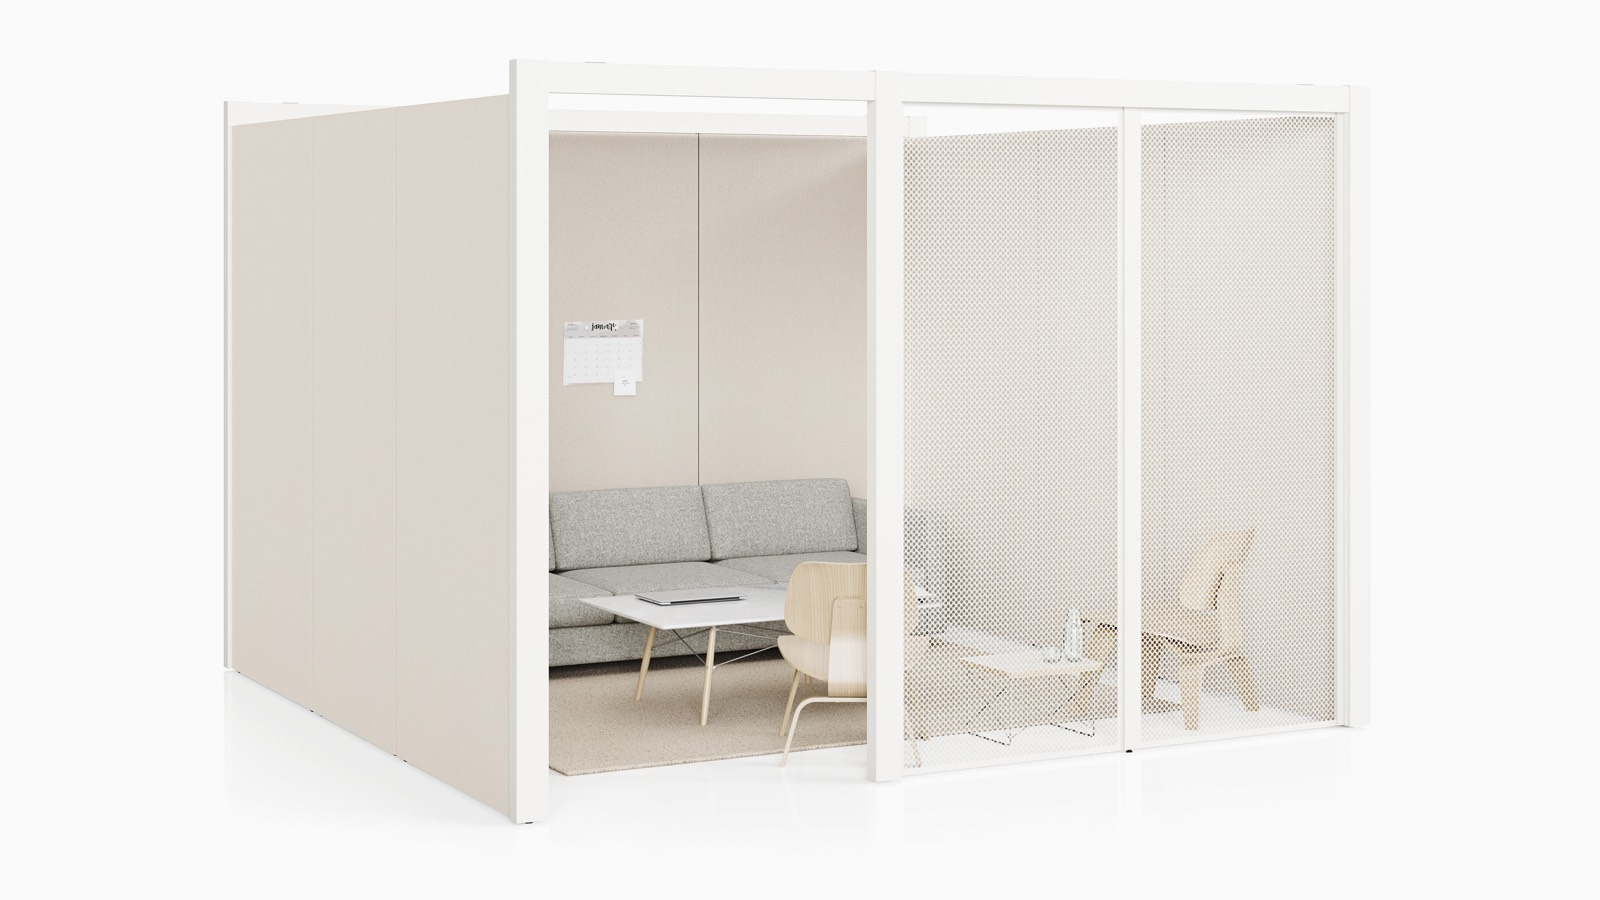 A semi-enclosed Overlay room with an off-white tackable fabric and white perforated metal exterior walls with a couch, tables, and two chairs inside.